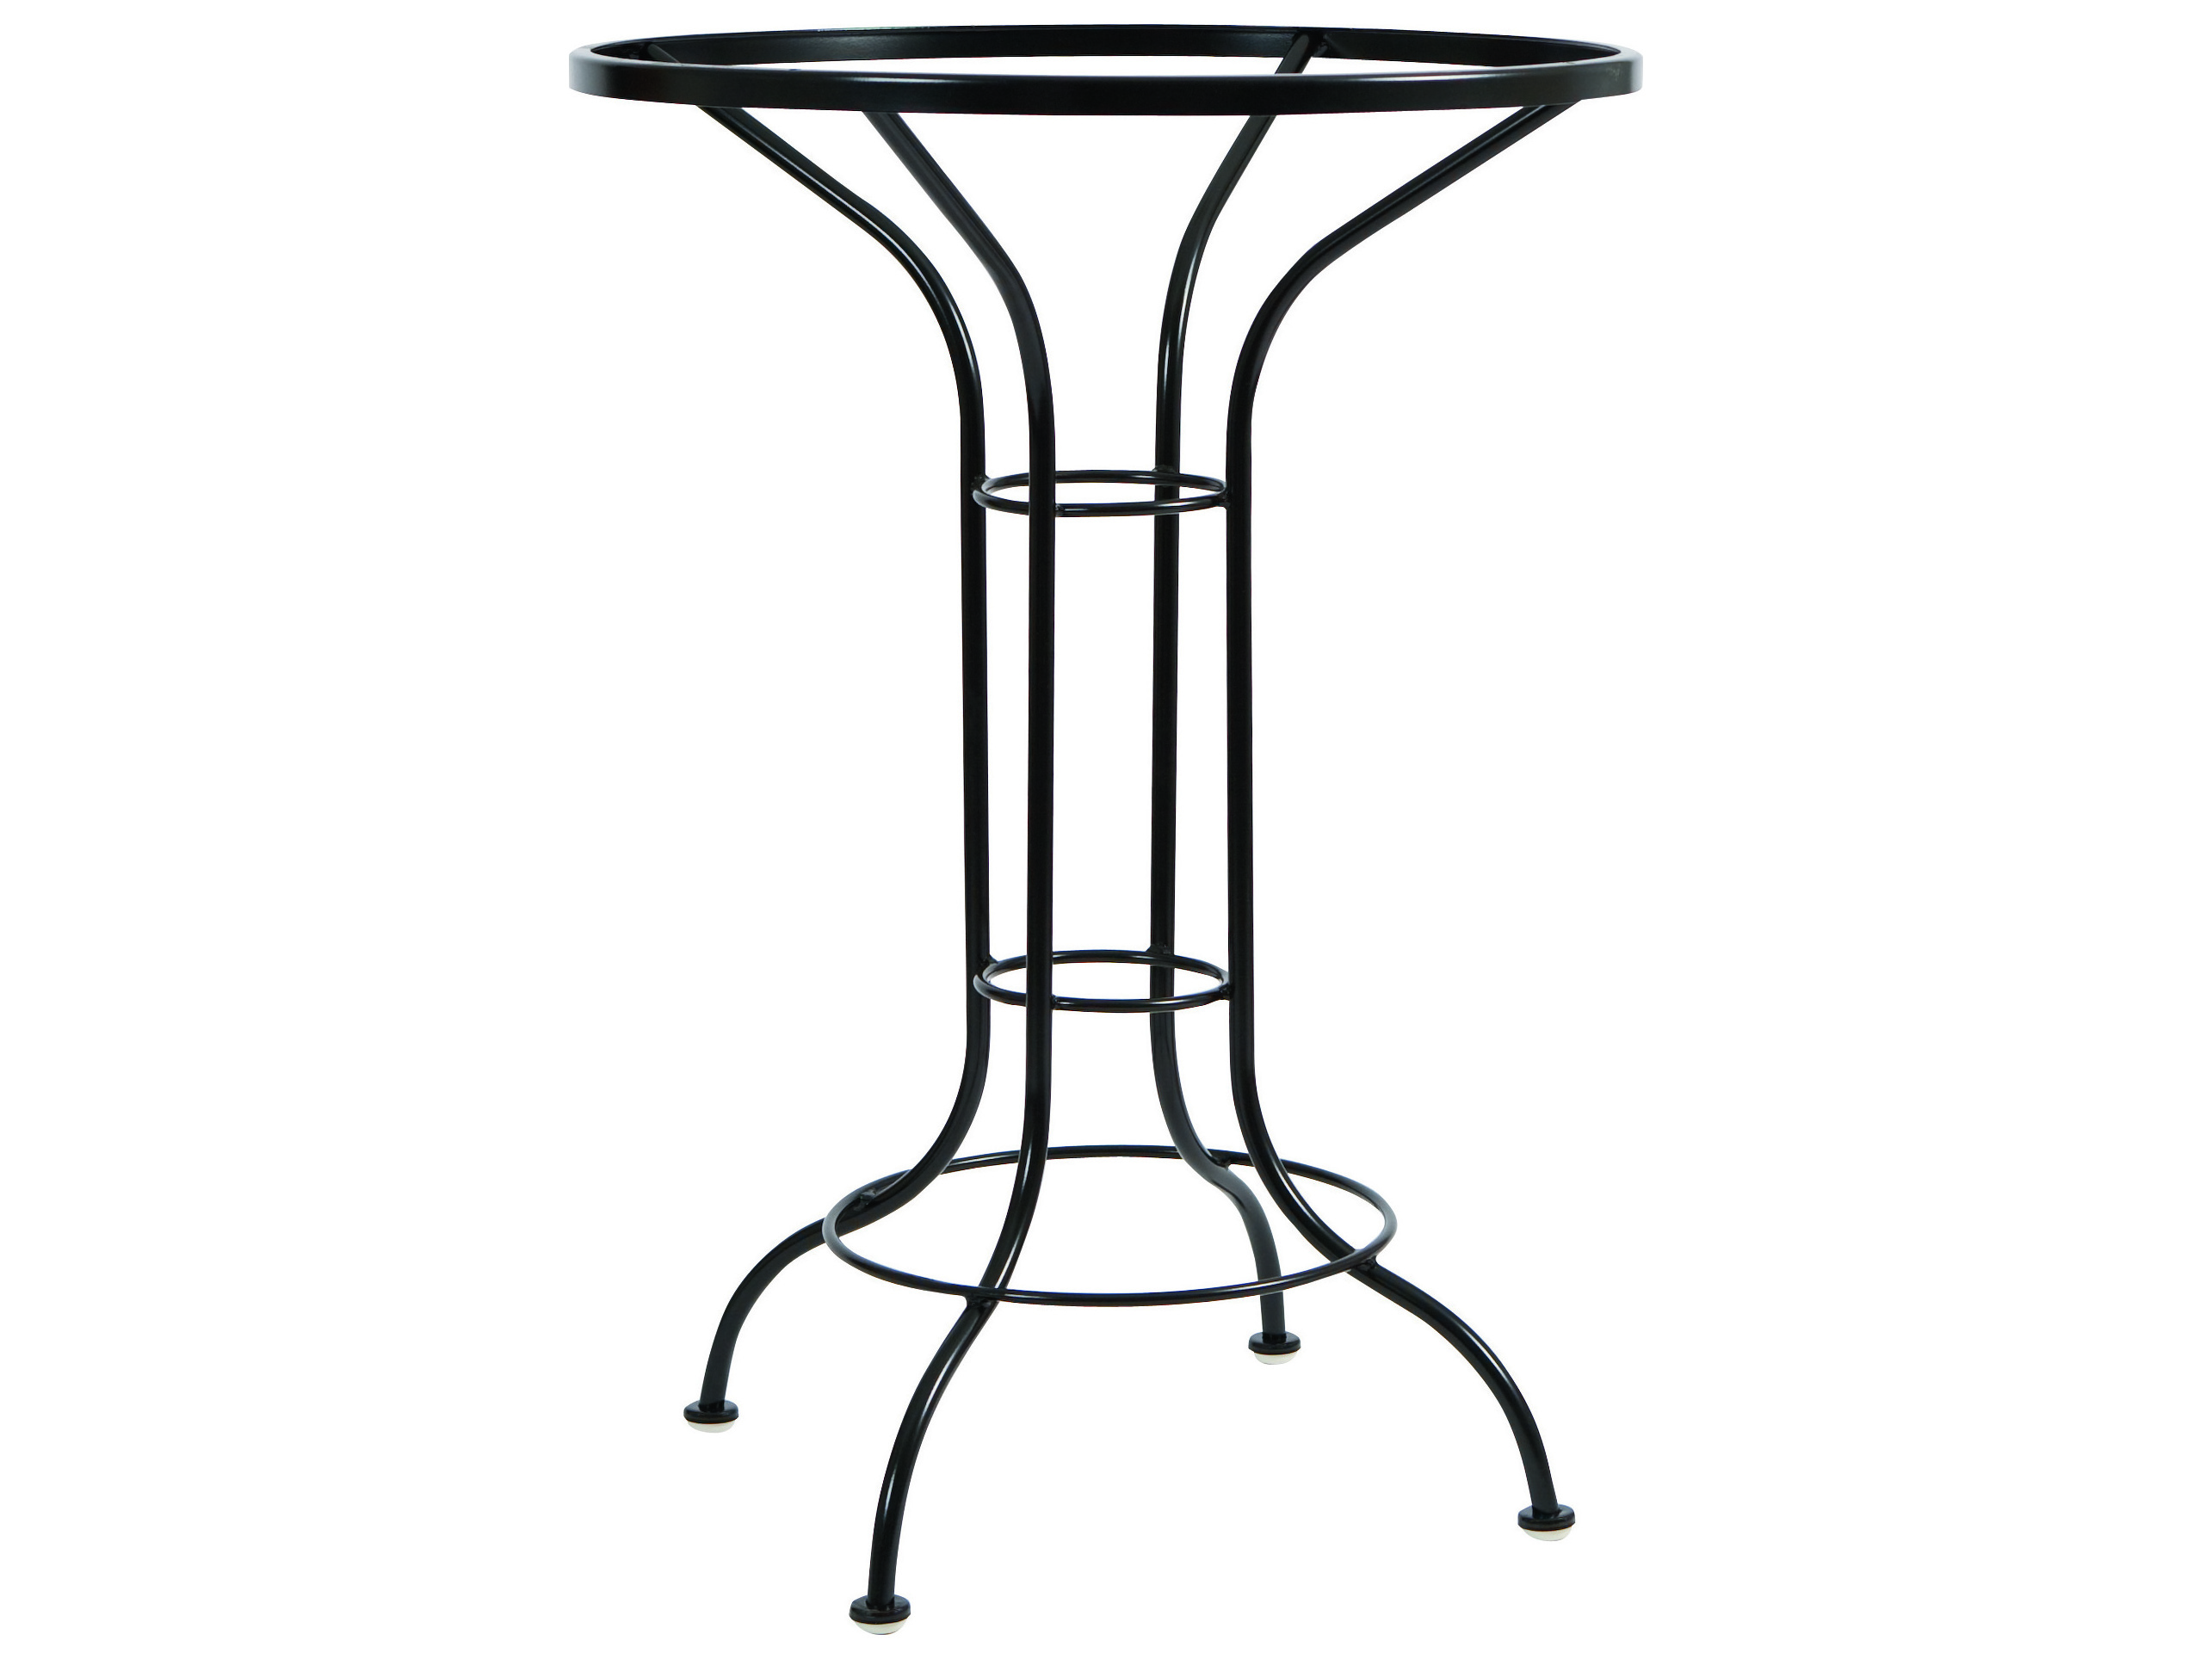 Woodard wrought iron round bar height table base 88f057 for Outdoor table bases wrought iron